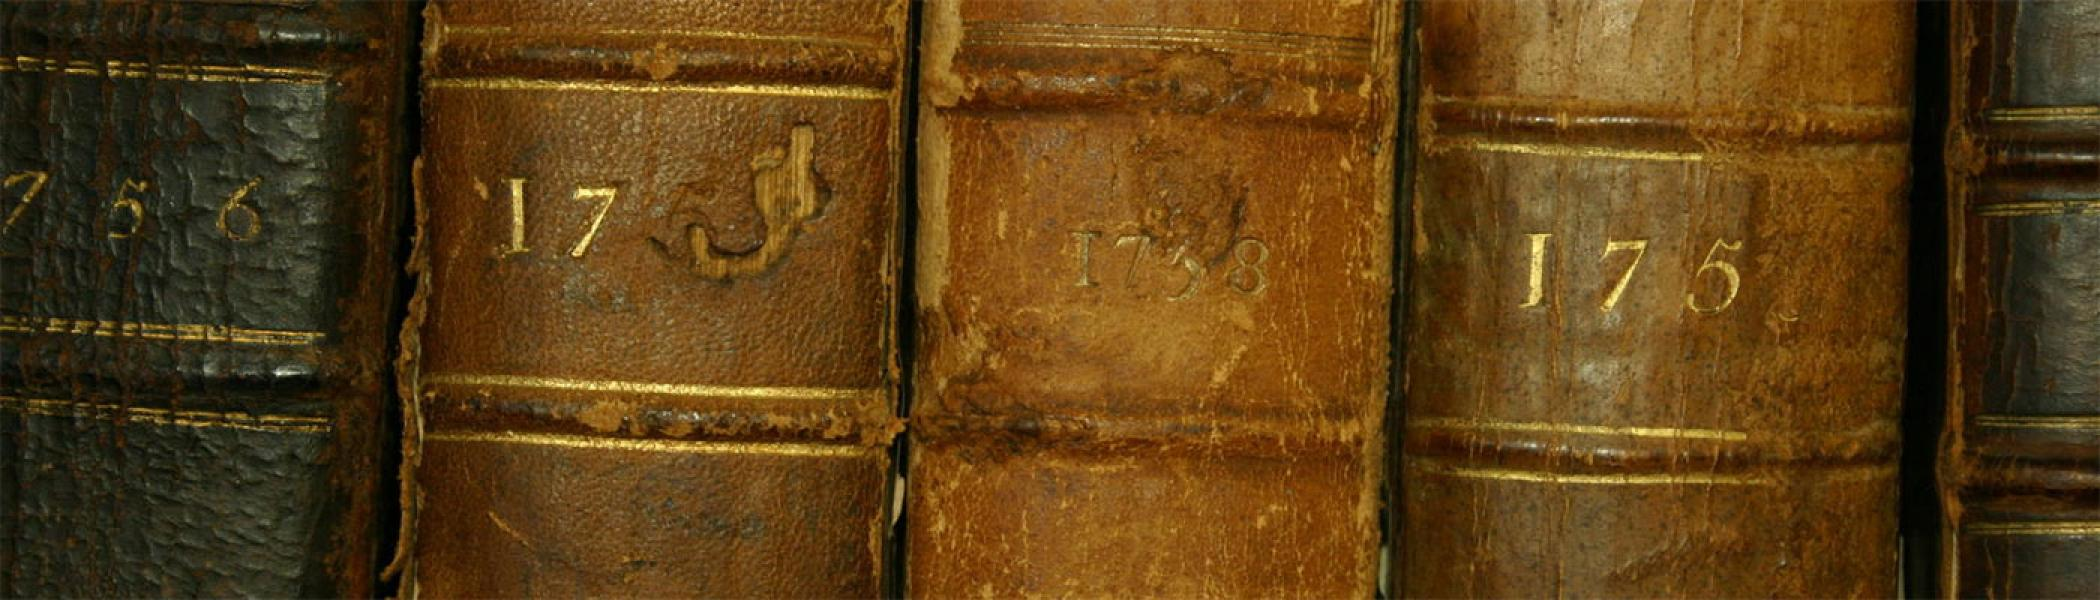 The spines of old history books